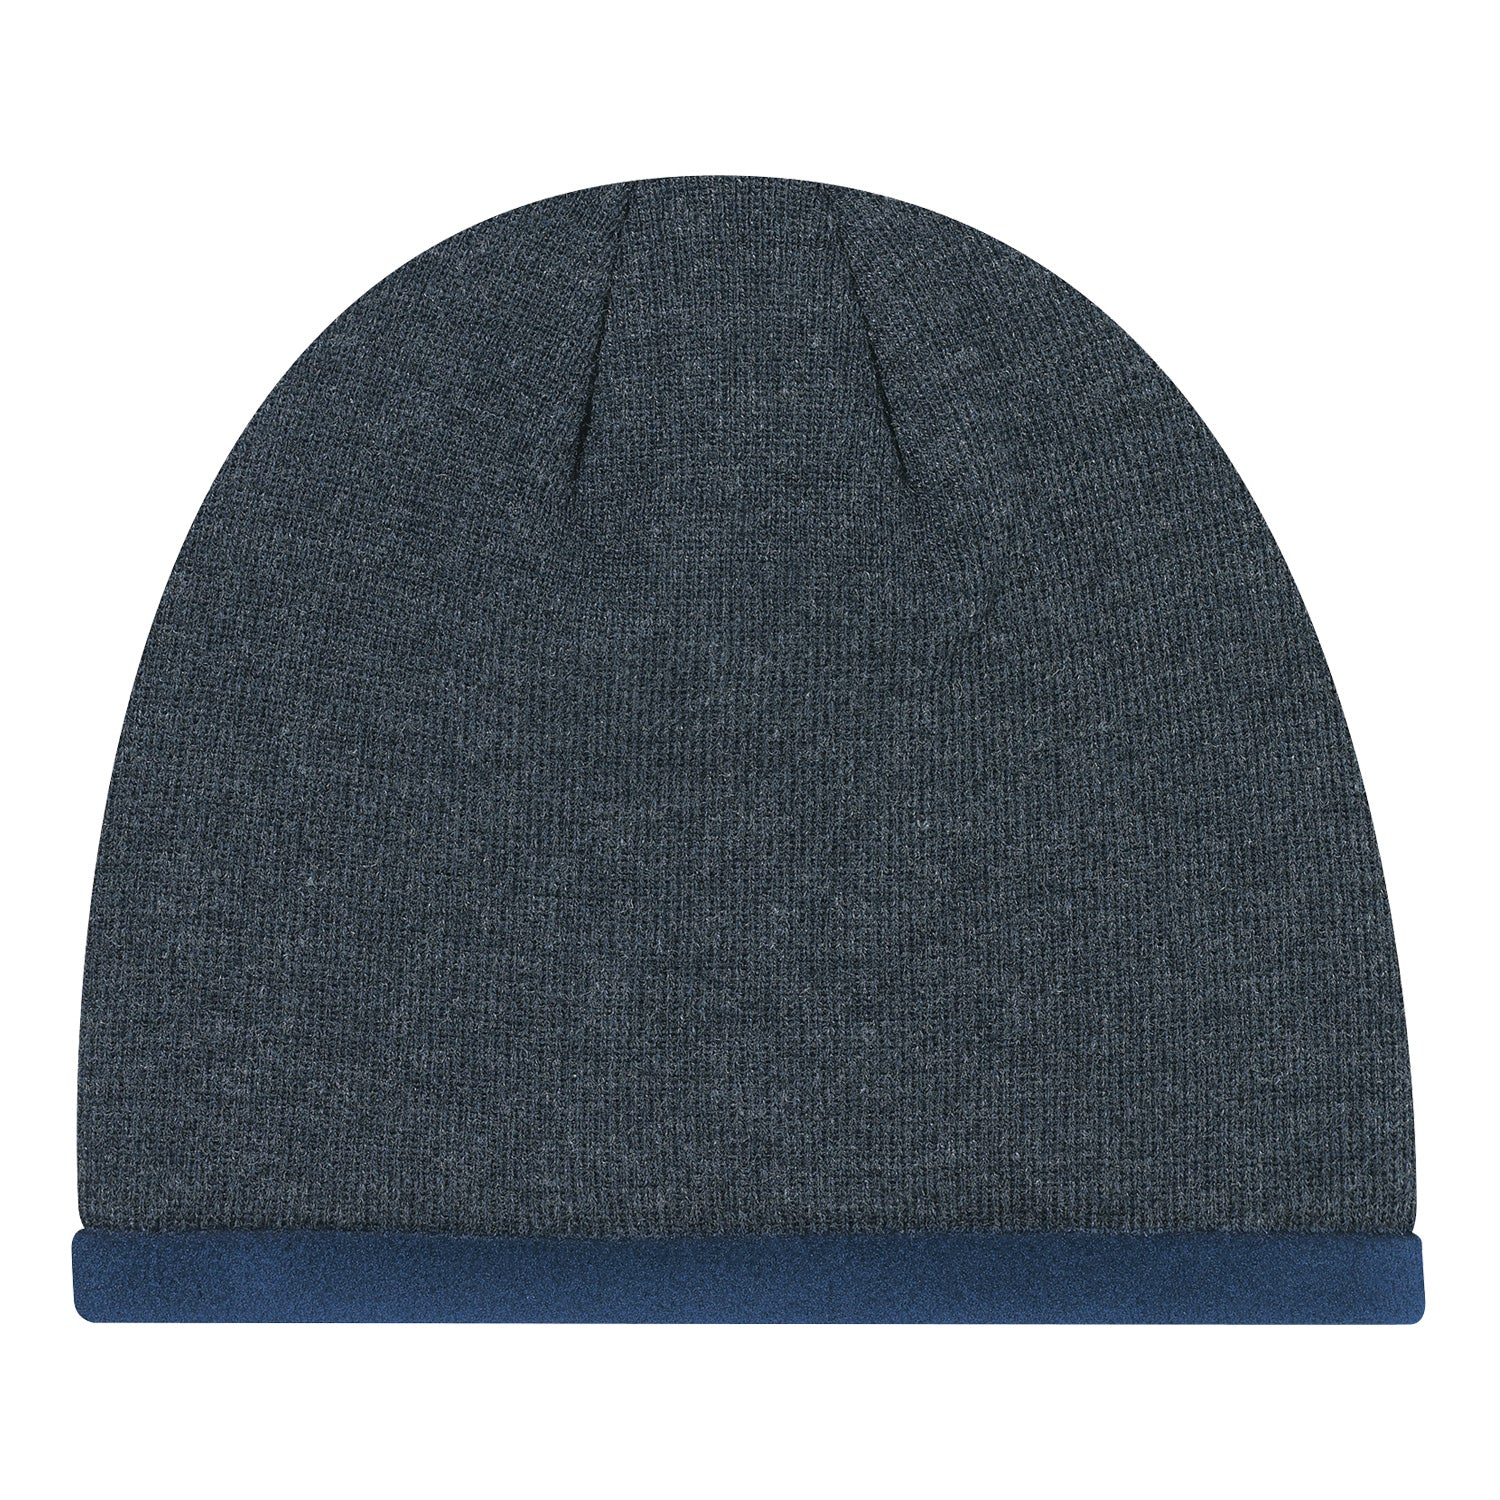 ACRYLIC POLYESTER MICRO FLEECE BOARD TOQUE